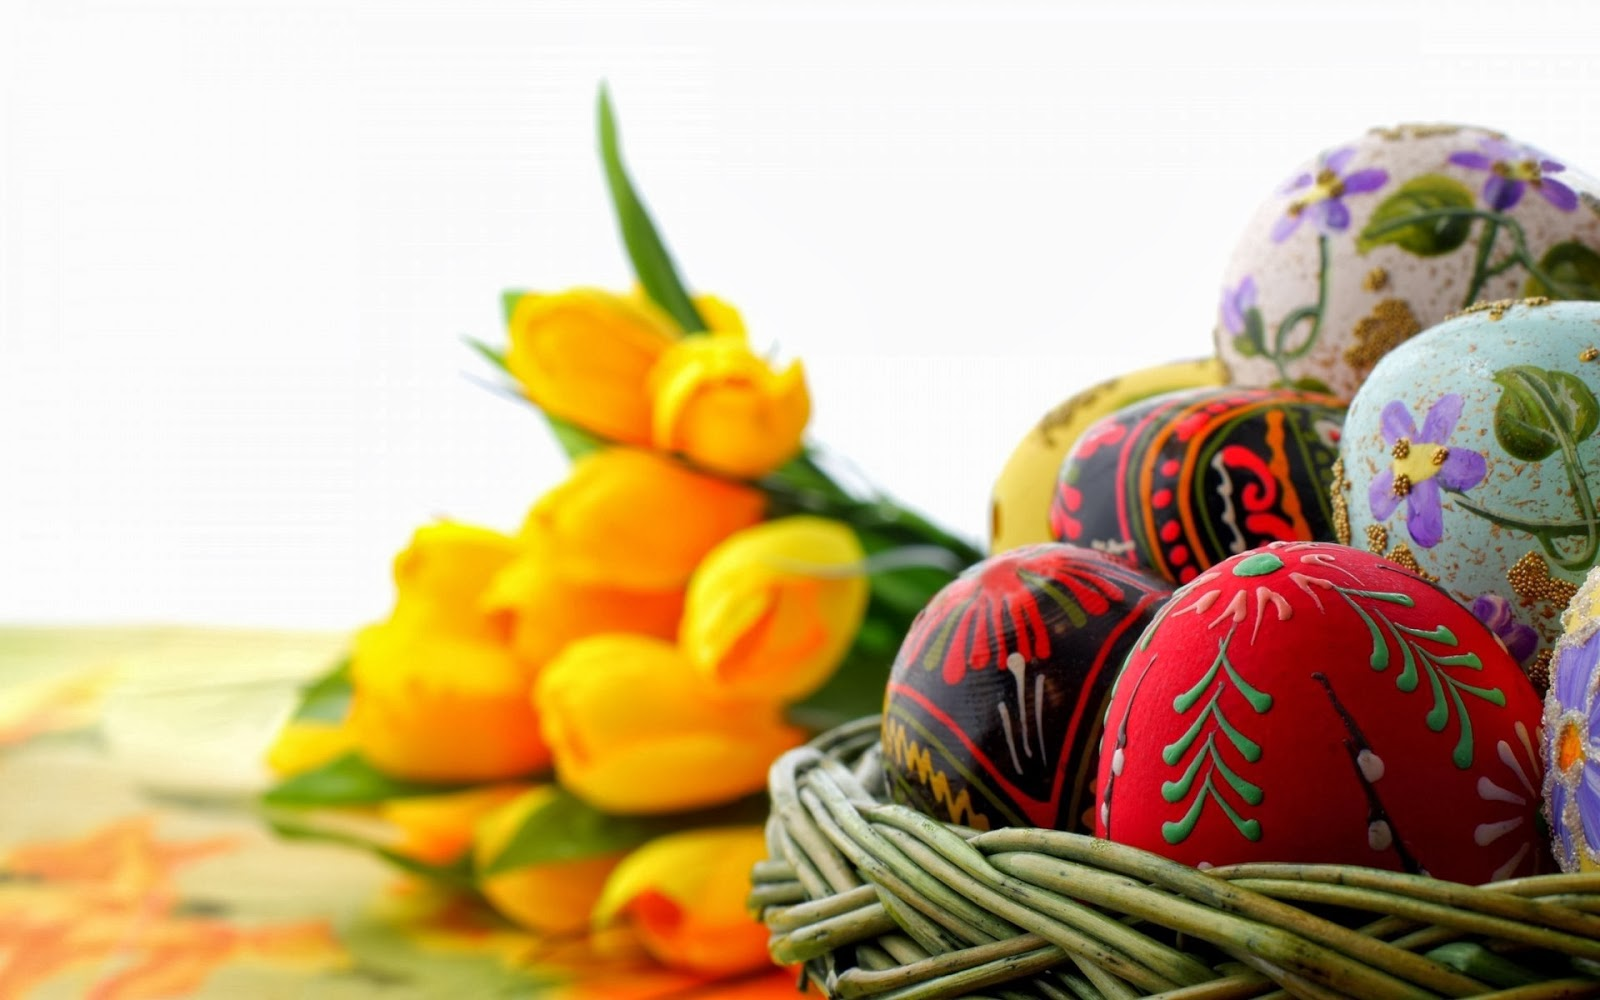 Easter 2014 HD Wallpapers Events Easter Wallpaper Events Wallpapers 1600x1000